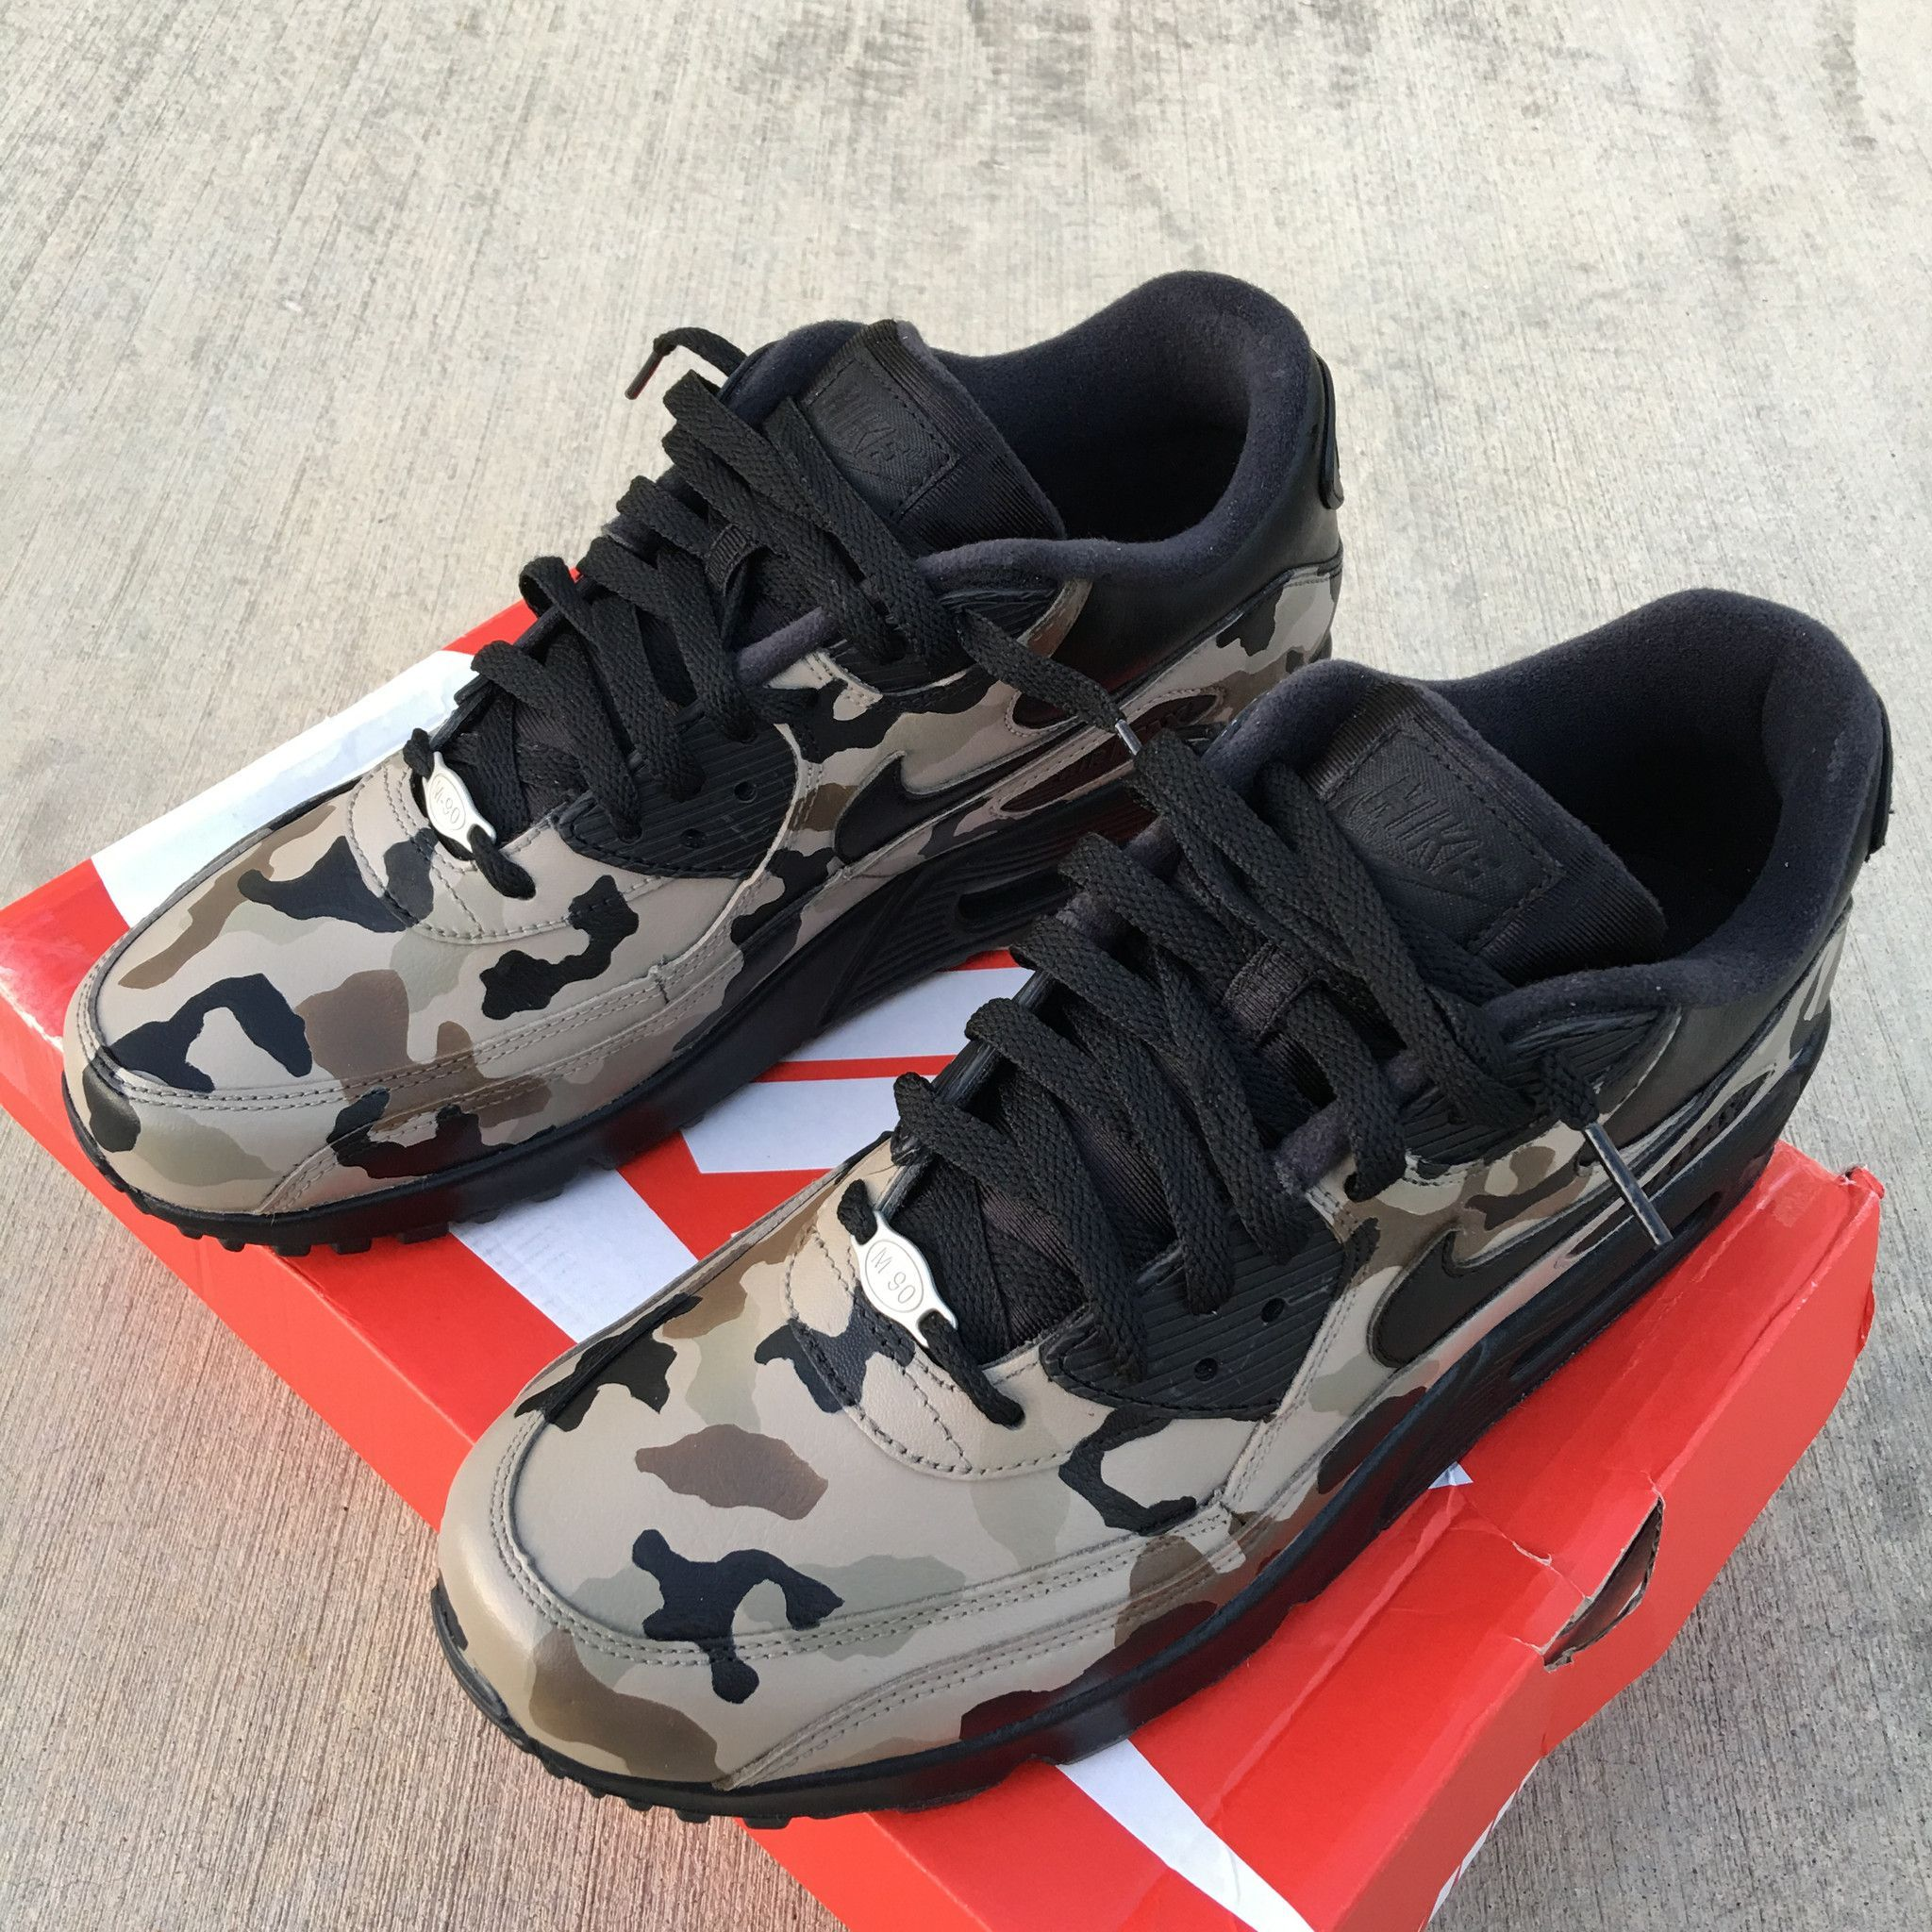 quality design 742a7 ff62a Custom Hand painted Nike AM90 Desert Camo Shoes. Each pair is hand painted  and coated with an acrylic clear coat. Paint is 100% permanent. Made in USA.